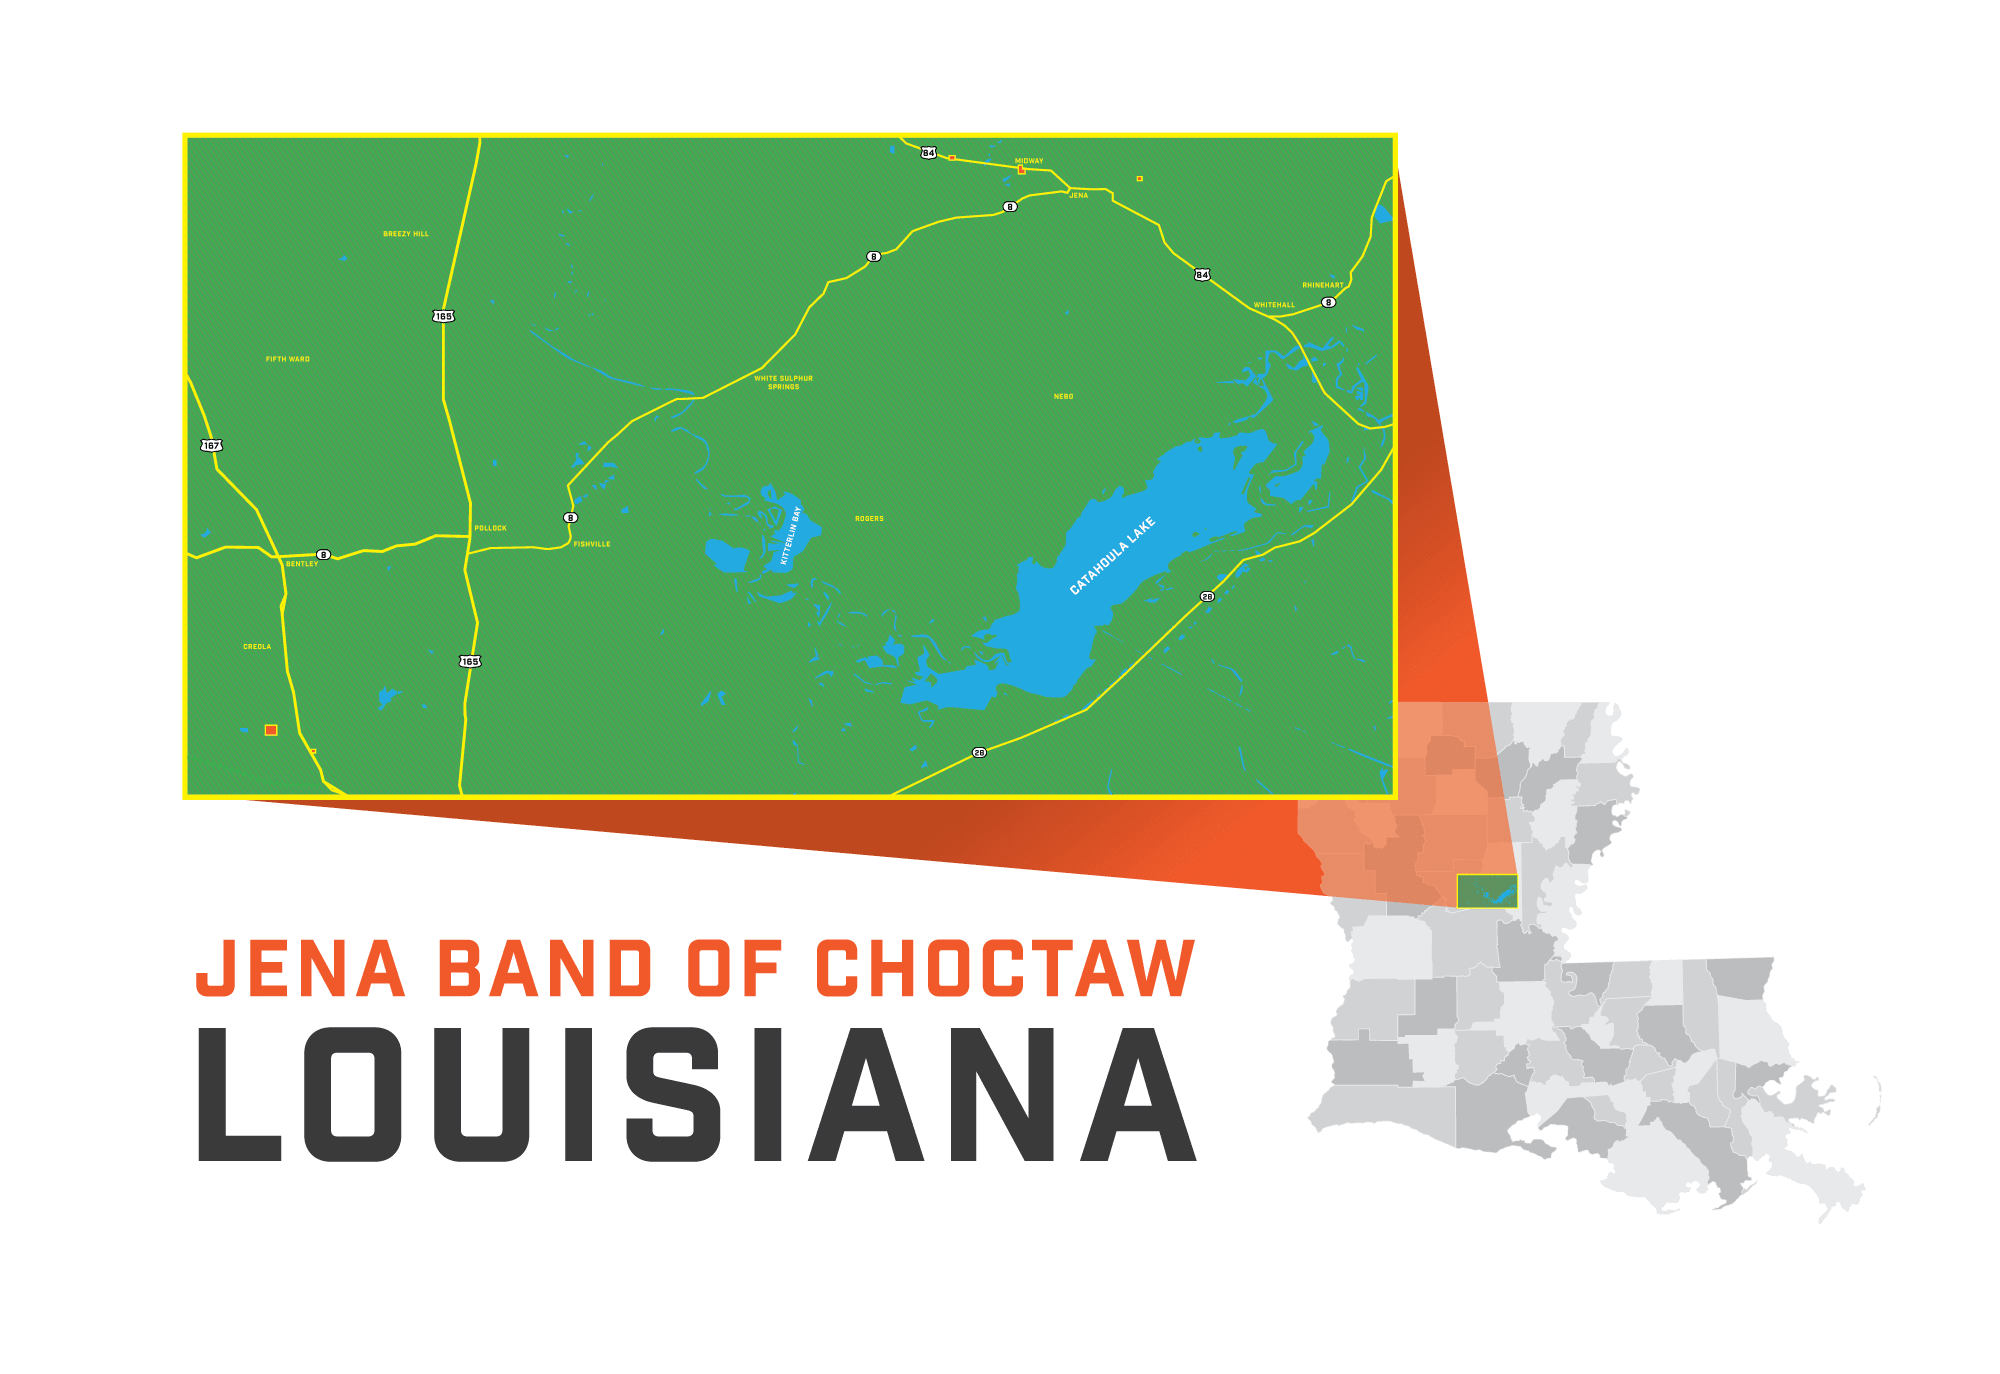 The Jena Band of Choctaw Indians